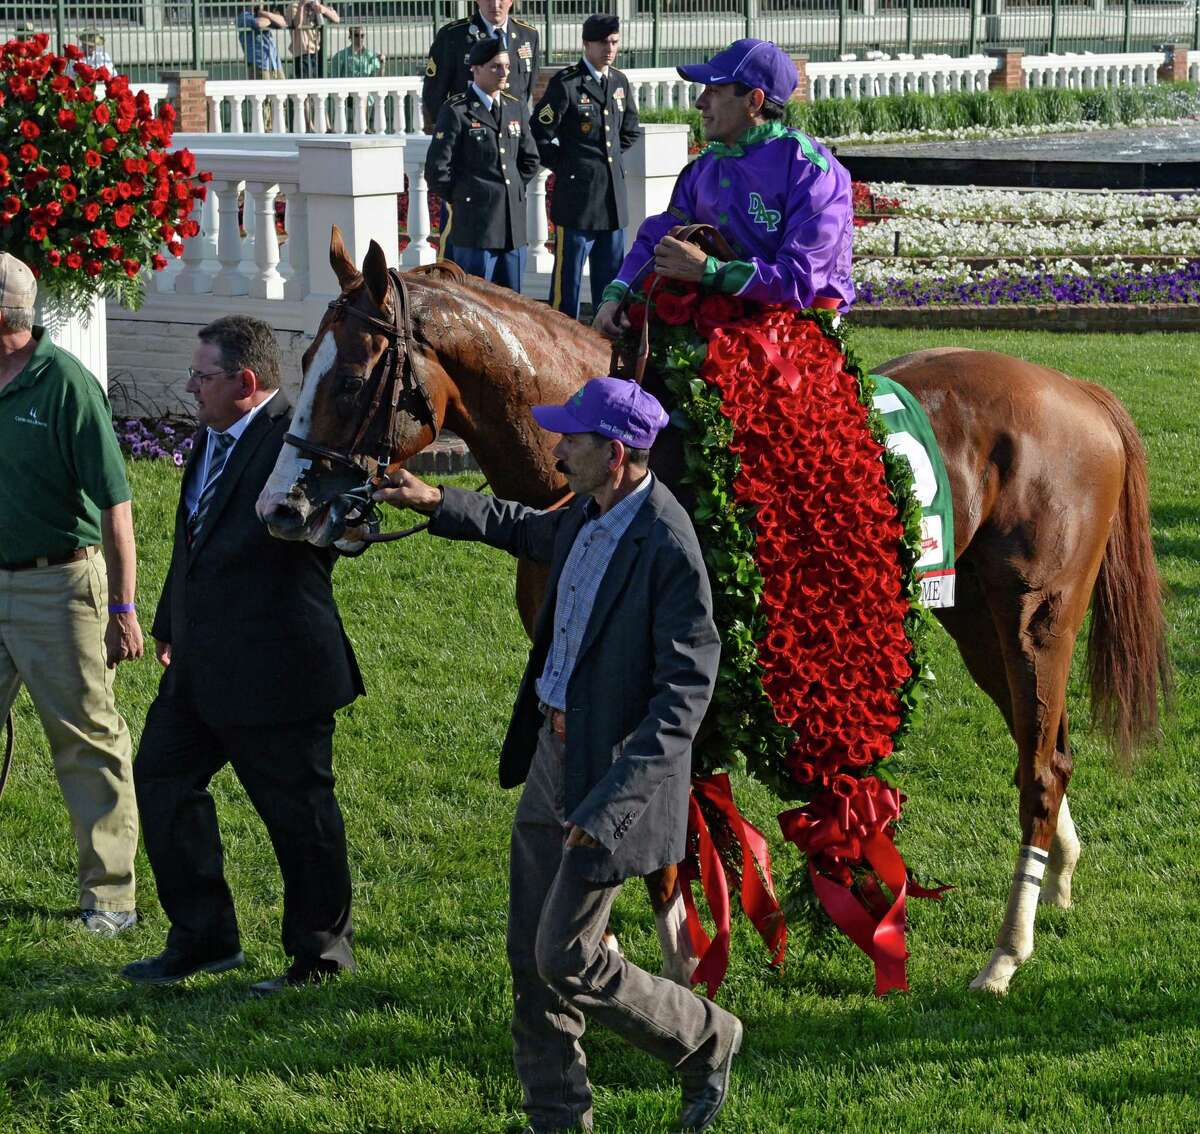 Victor Espinoza rides in to the winner's circle with the blanket of roses after winning the 140th running of The Kentucky Derby aboard California Chrome Saturday evening May 3, 2014 in Louisville, Kentucky (Skip Dickstein / Times Union) ORG XMIT: J=0504_derby